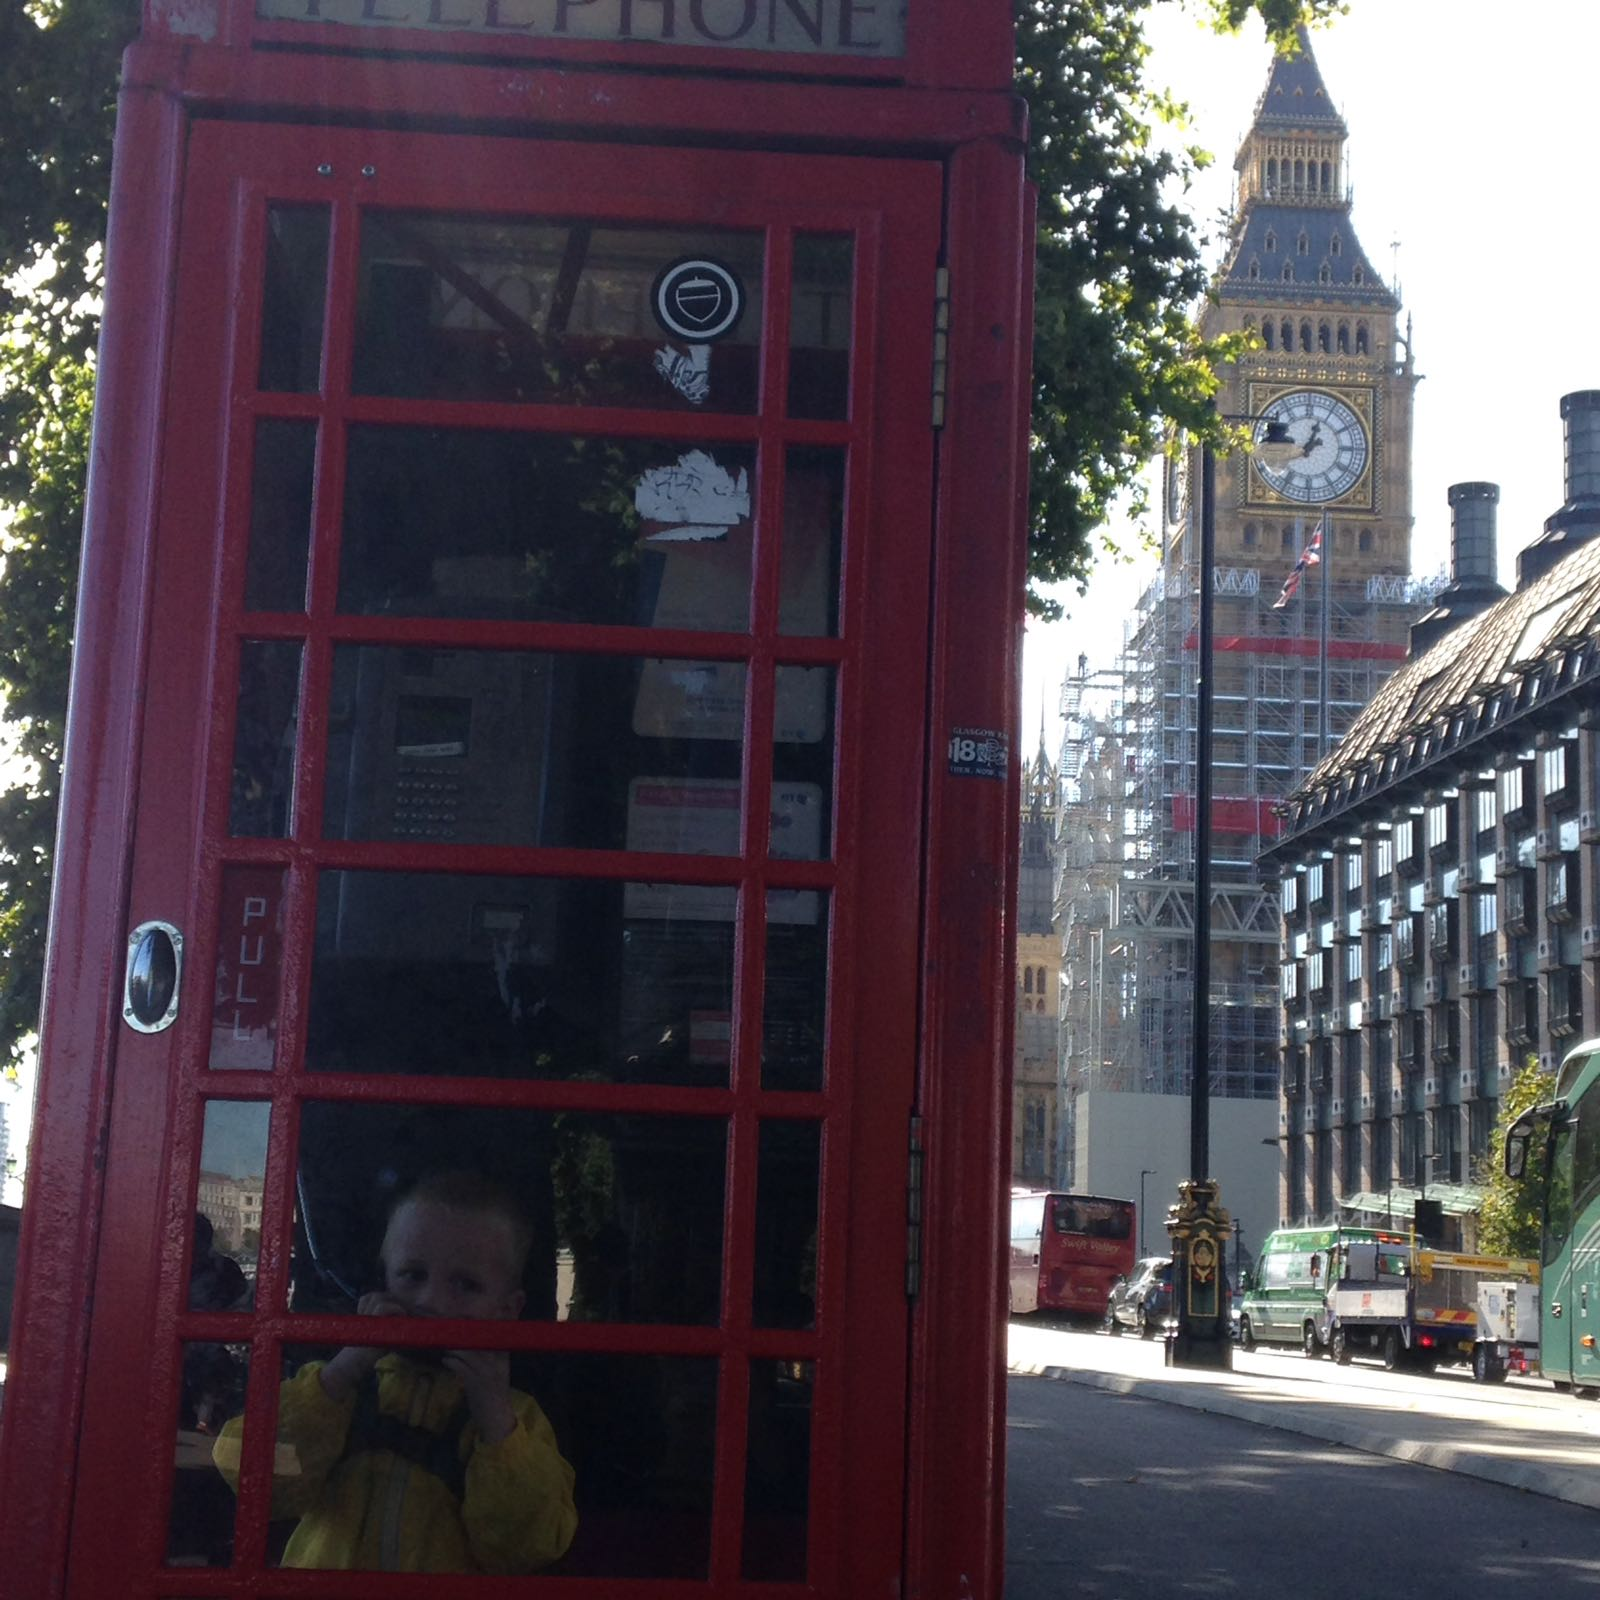 London_Phone_BigBen